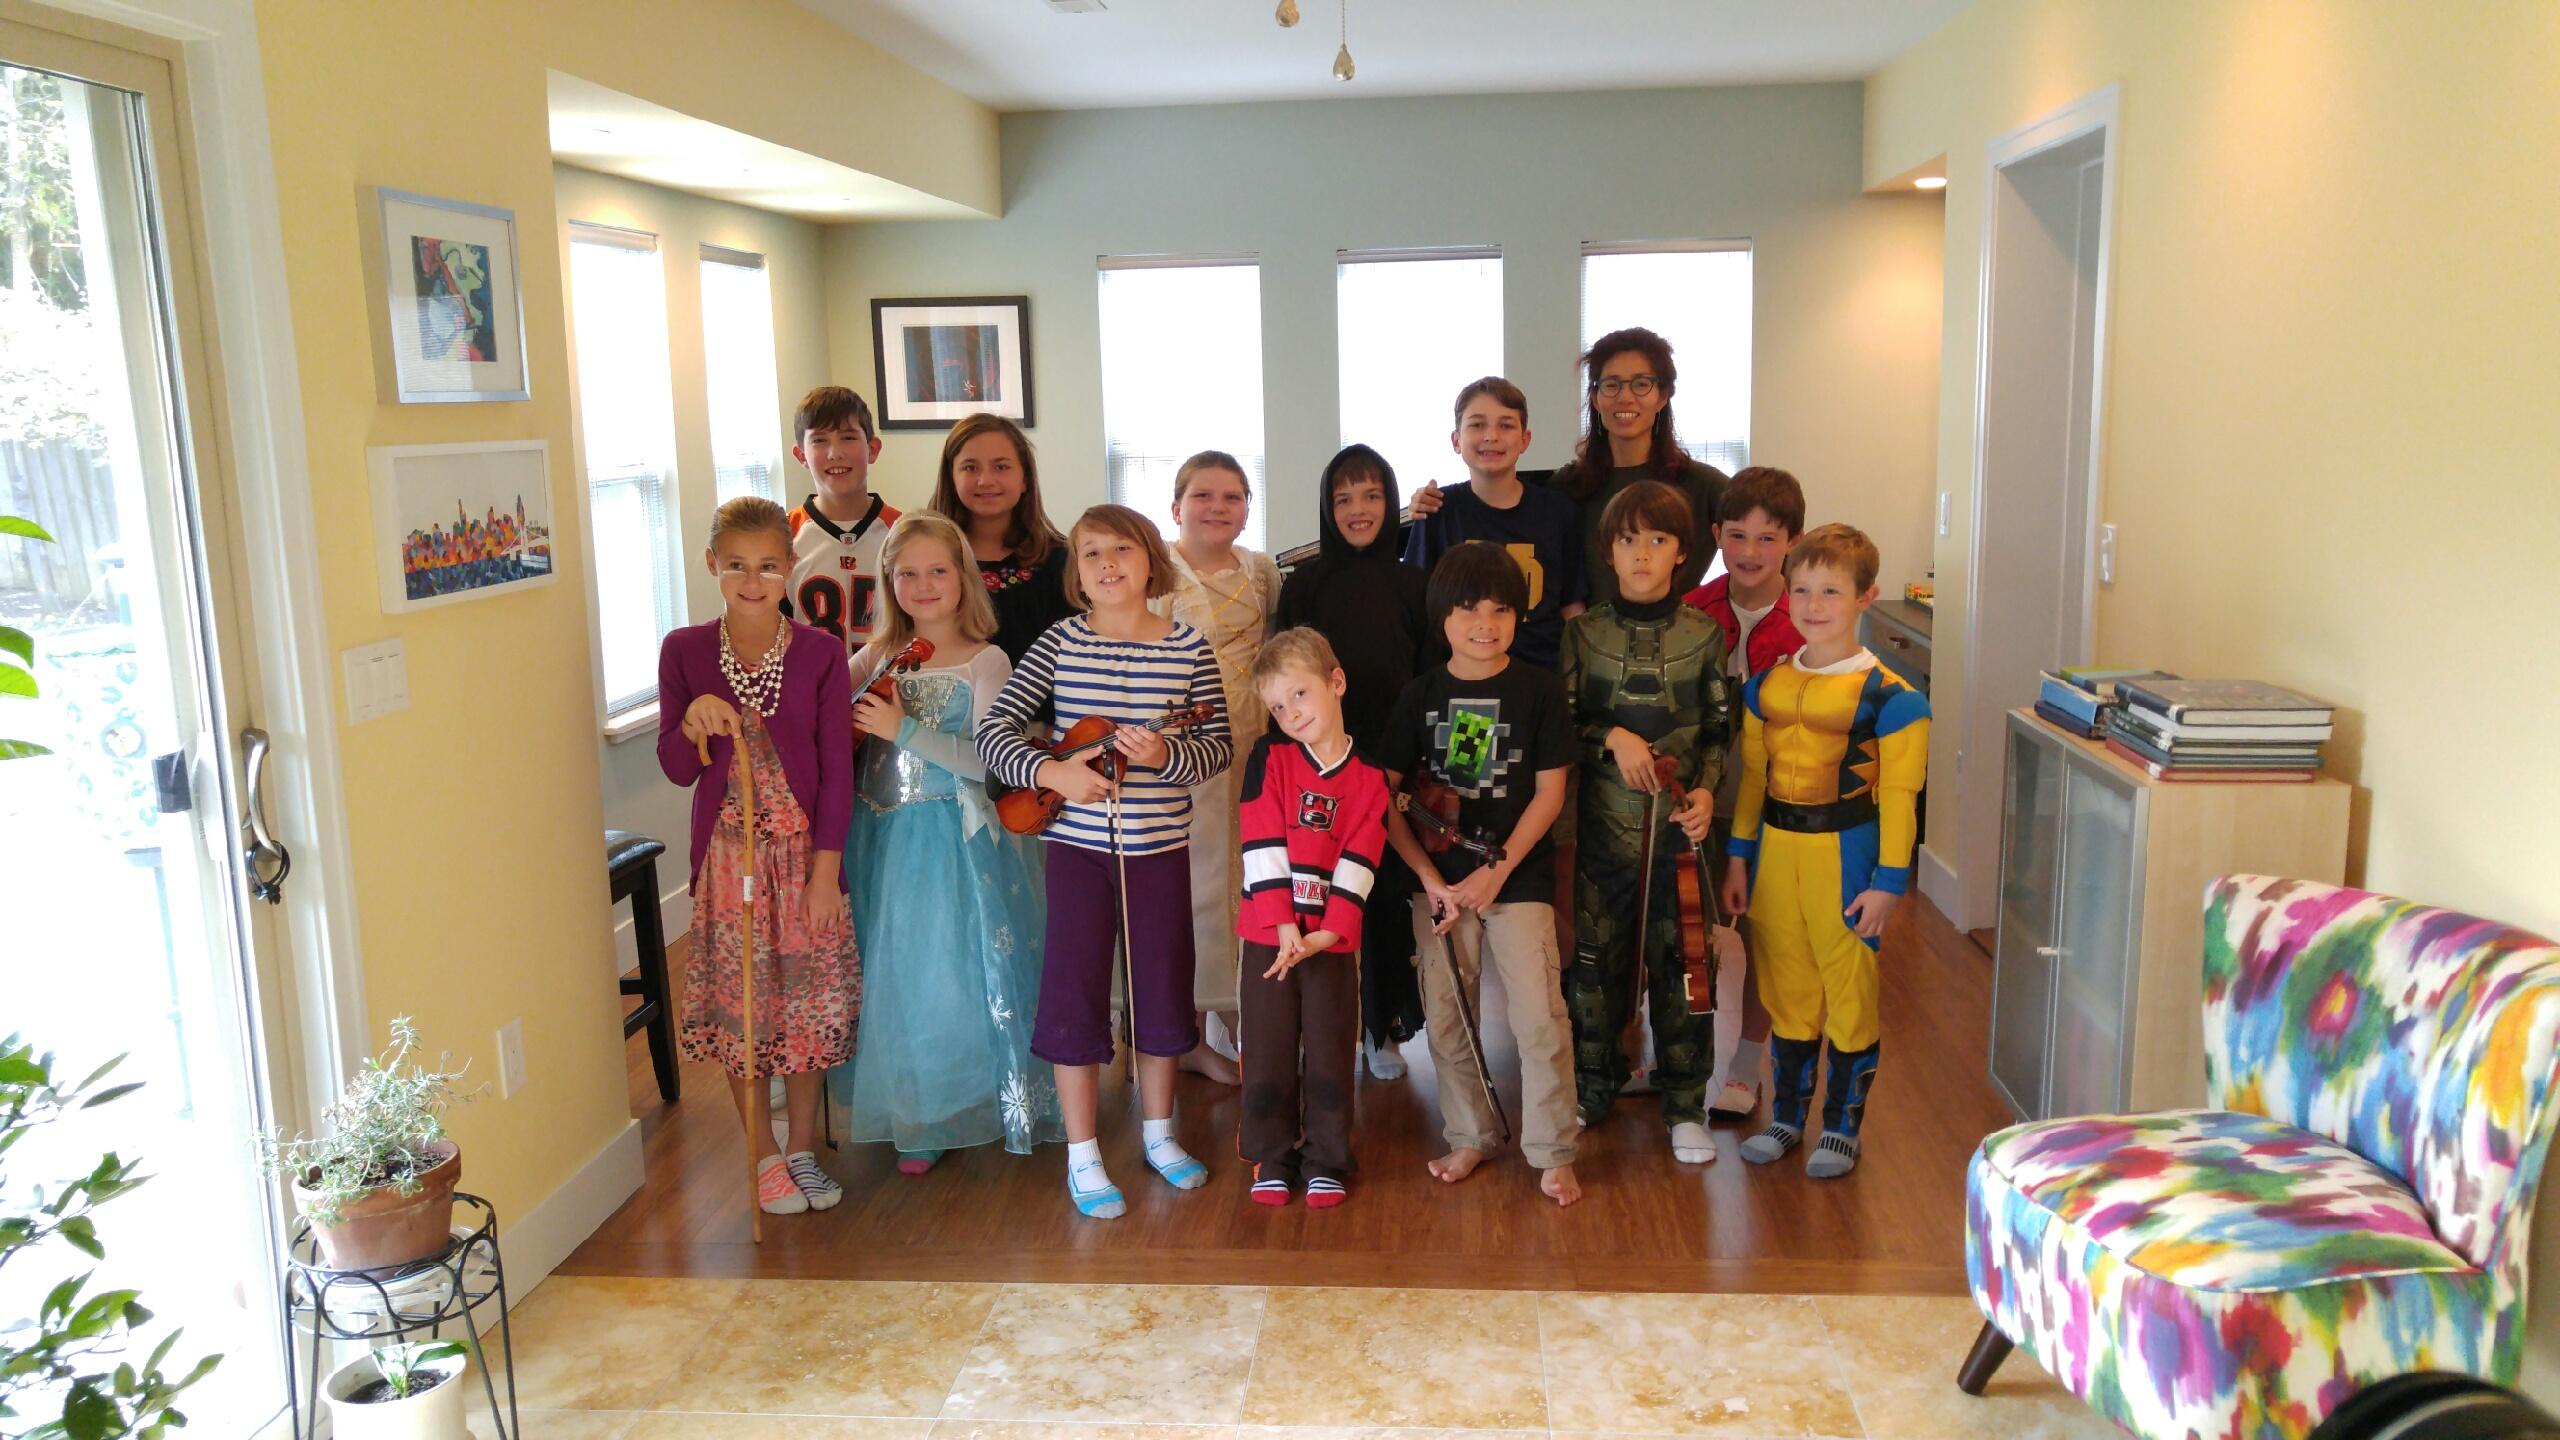 photos - group halloween